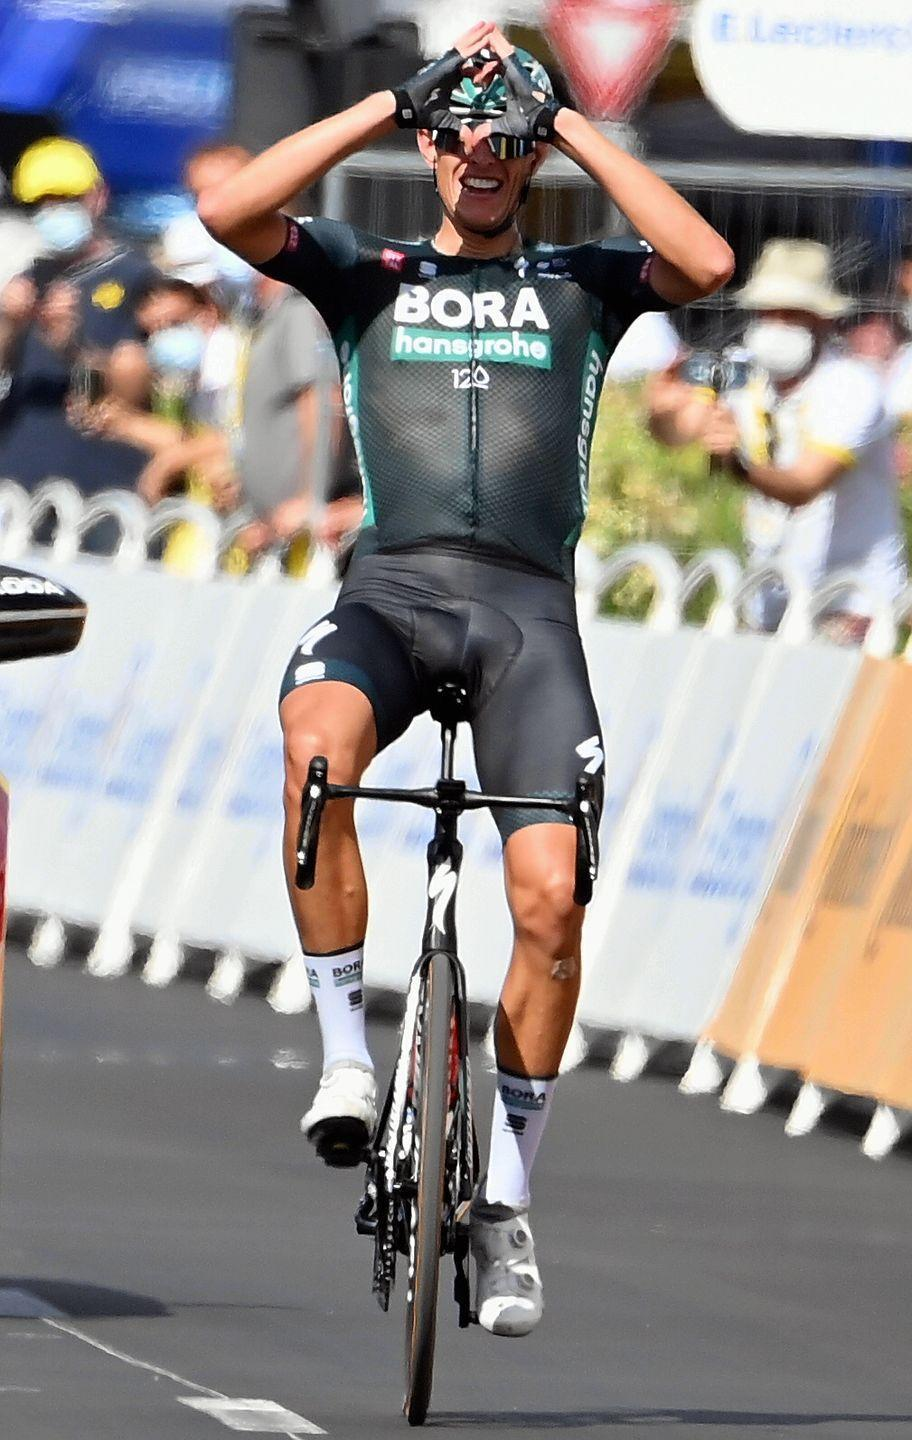 <p><strong>Who's Winning the Tour?</strong></p><p>Despite finishing almost 16 minutes behind Germany's Nils Politt (BORA-Hansgrohe), the Stage 12 winner, Slovenia's Tadej Pogačar (UAE Team Emirates) remained the overall leader of the 2021 Tour de France. The 22-year-old finished safely in the peloton at the end of Stage 12 in Nîmes and still leads Colombia's Rigoberto Uran (EF Education-Nippo) by 5:18 and Denmark's Jonas Vingegaard (Jumbo-Visma) by 5:32 on the Tour's General Classification.</p><p>On a day most expected to end in a field sprint, the breakaway survived as the peloton, tired from Wednesday's double-dose of Mont Ventoux, was content to let a group of out-of-contention rouleurs ride away to a large advantage. Winds played a role in the action: crosswinds during the first hour helped the breakaway escape and more crosswinds in the final hour gave the break's strongest riders an opportunity to leave their colleagues behind.</p><p>In the end, Germany's Nils Politt (BORA-hansgrohe) took the stage victory. A former runner-up in Paris-Roubaix, the 27-year-old attacked his two companions with about 11km to go, riding away to take the first grand tour stage victory of his career. And the win couldn't have come at a better time as earlier in the day his teammate, Peter Sagan, abandoned the Tour to prepare for the Olympics. Spain's Imanol Erviti (Movistar) and Australia's Harry Sweeny (Lotto-Soudal) held on behind Politt to finish second and third, 31 seconds later.</p><p><strong>Who's <em>Really</em> Winning the Tour?</strong></p><p>The Tour's General Classification remained unchanged after Stage 12, but with none of the sprinters' teams willing to take responsibility for chasing down the breakaway, Pogačar's UAE Team Emirates teammates were forced to spend all day on the front. </p><p>With several hard days in the Pyrenees still to come, stages like this can have an accumulative effect on the team defending the yellow jersey, forcing them to burn matches (as the